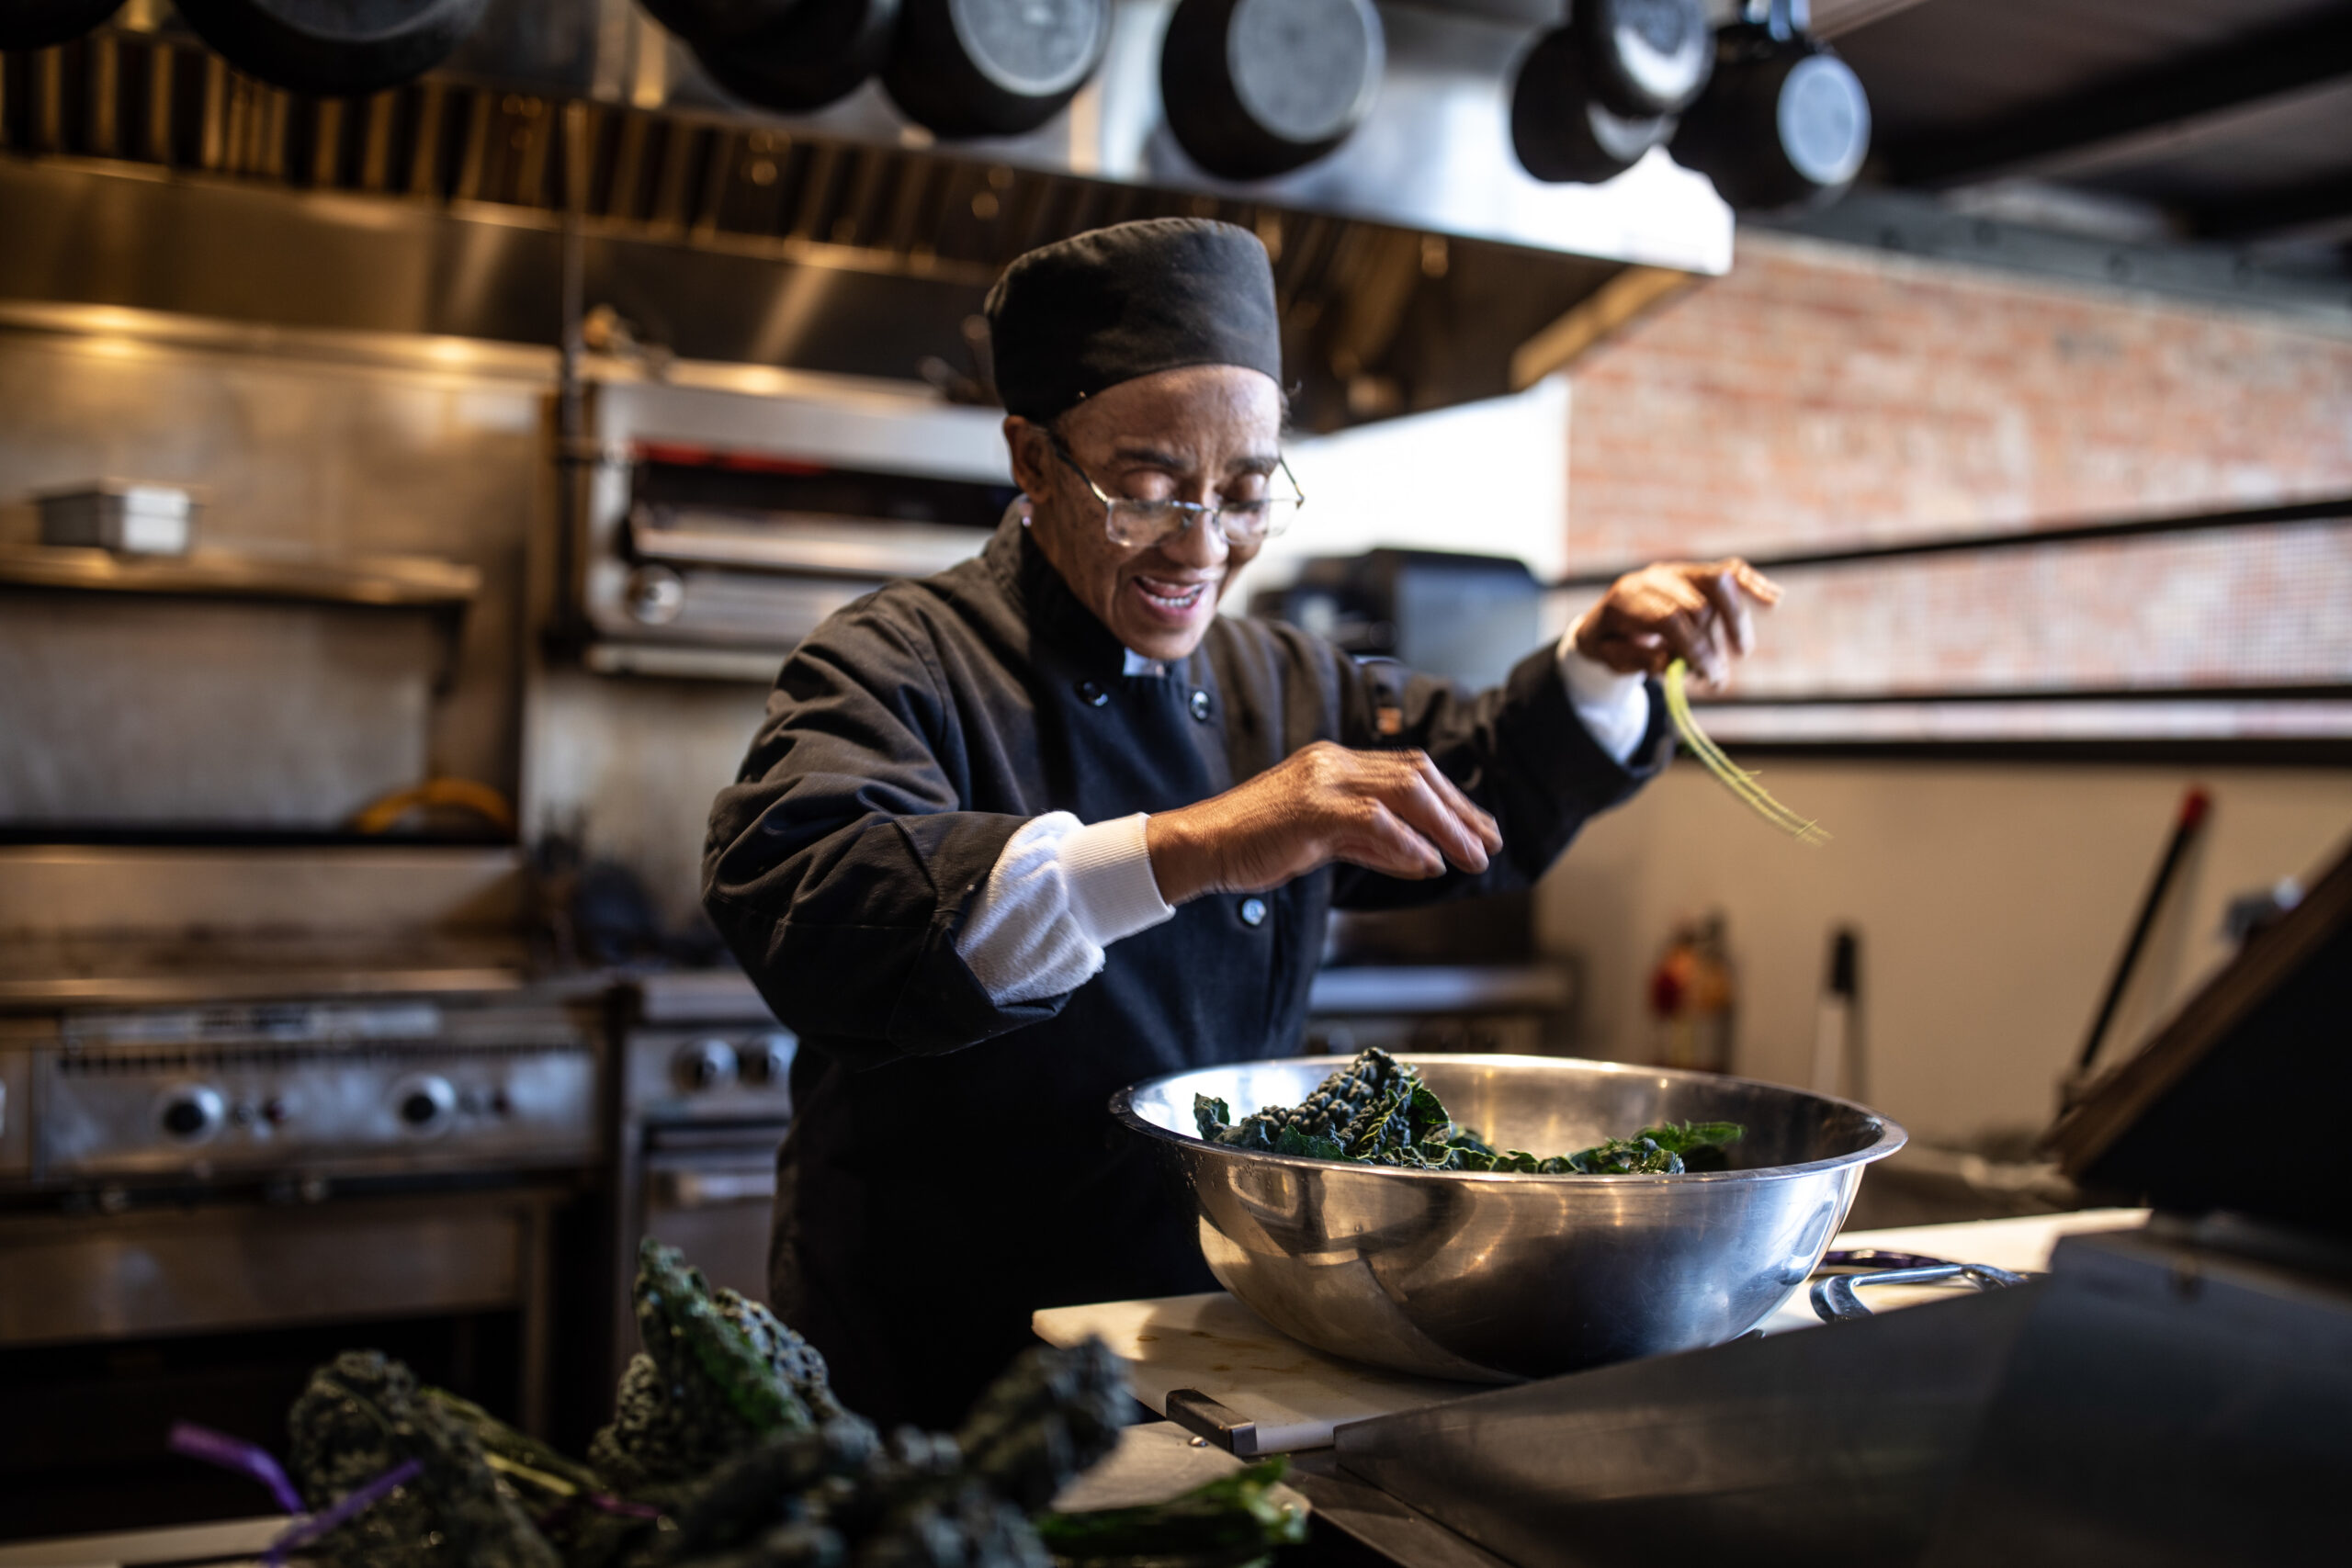 Science is everywhere, even in Hanan Shabazz's cooking wizardry at Benne on Eagle restaurant in Asheville. Credit: Jared Kay/VisitNC.com